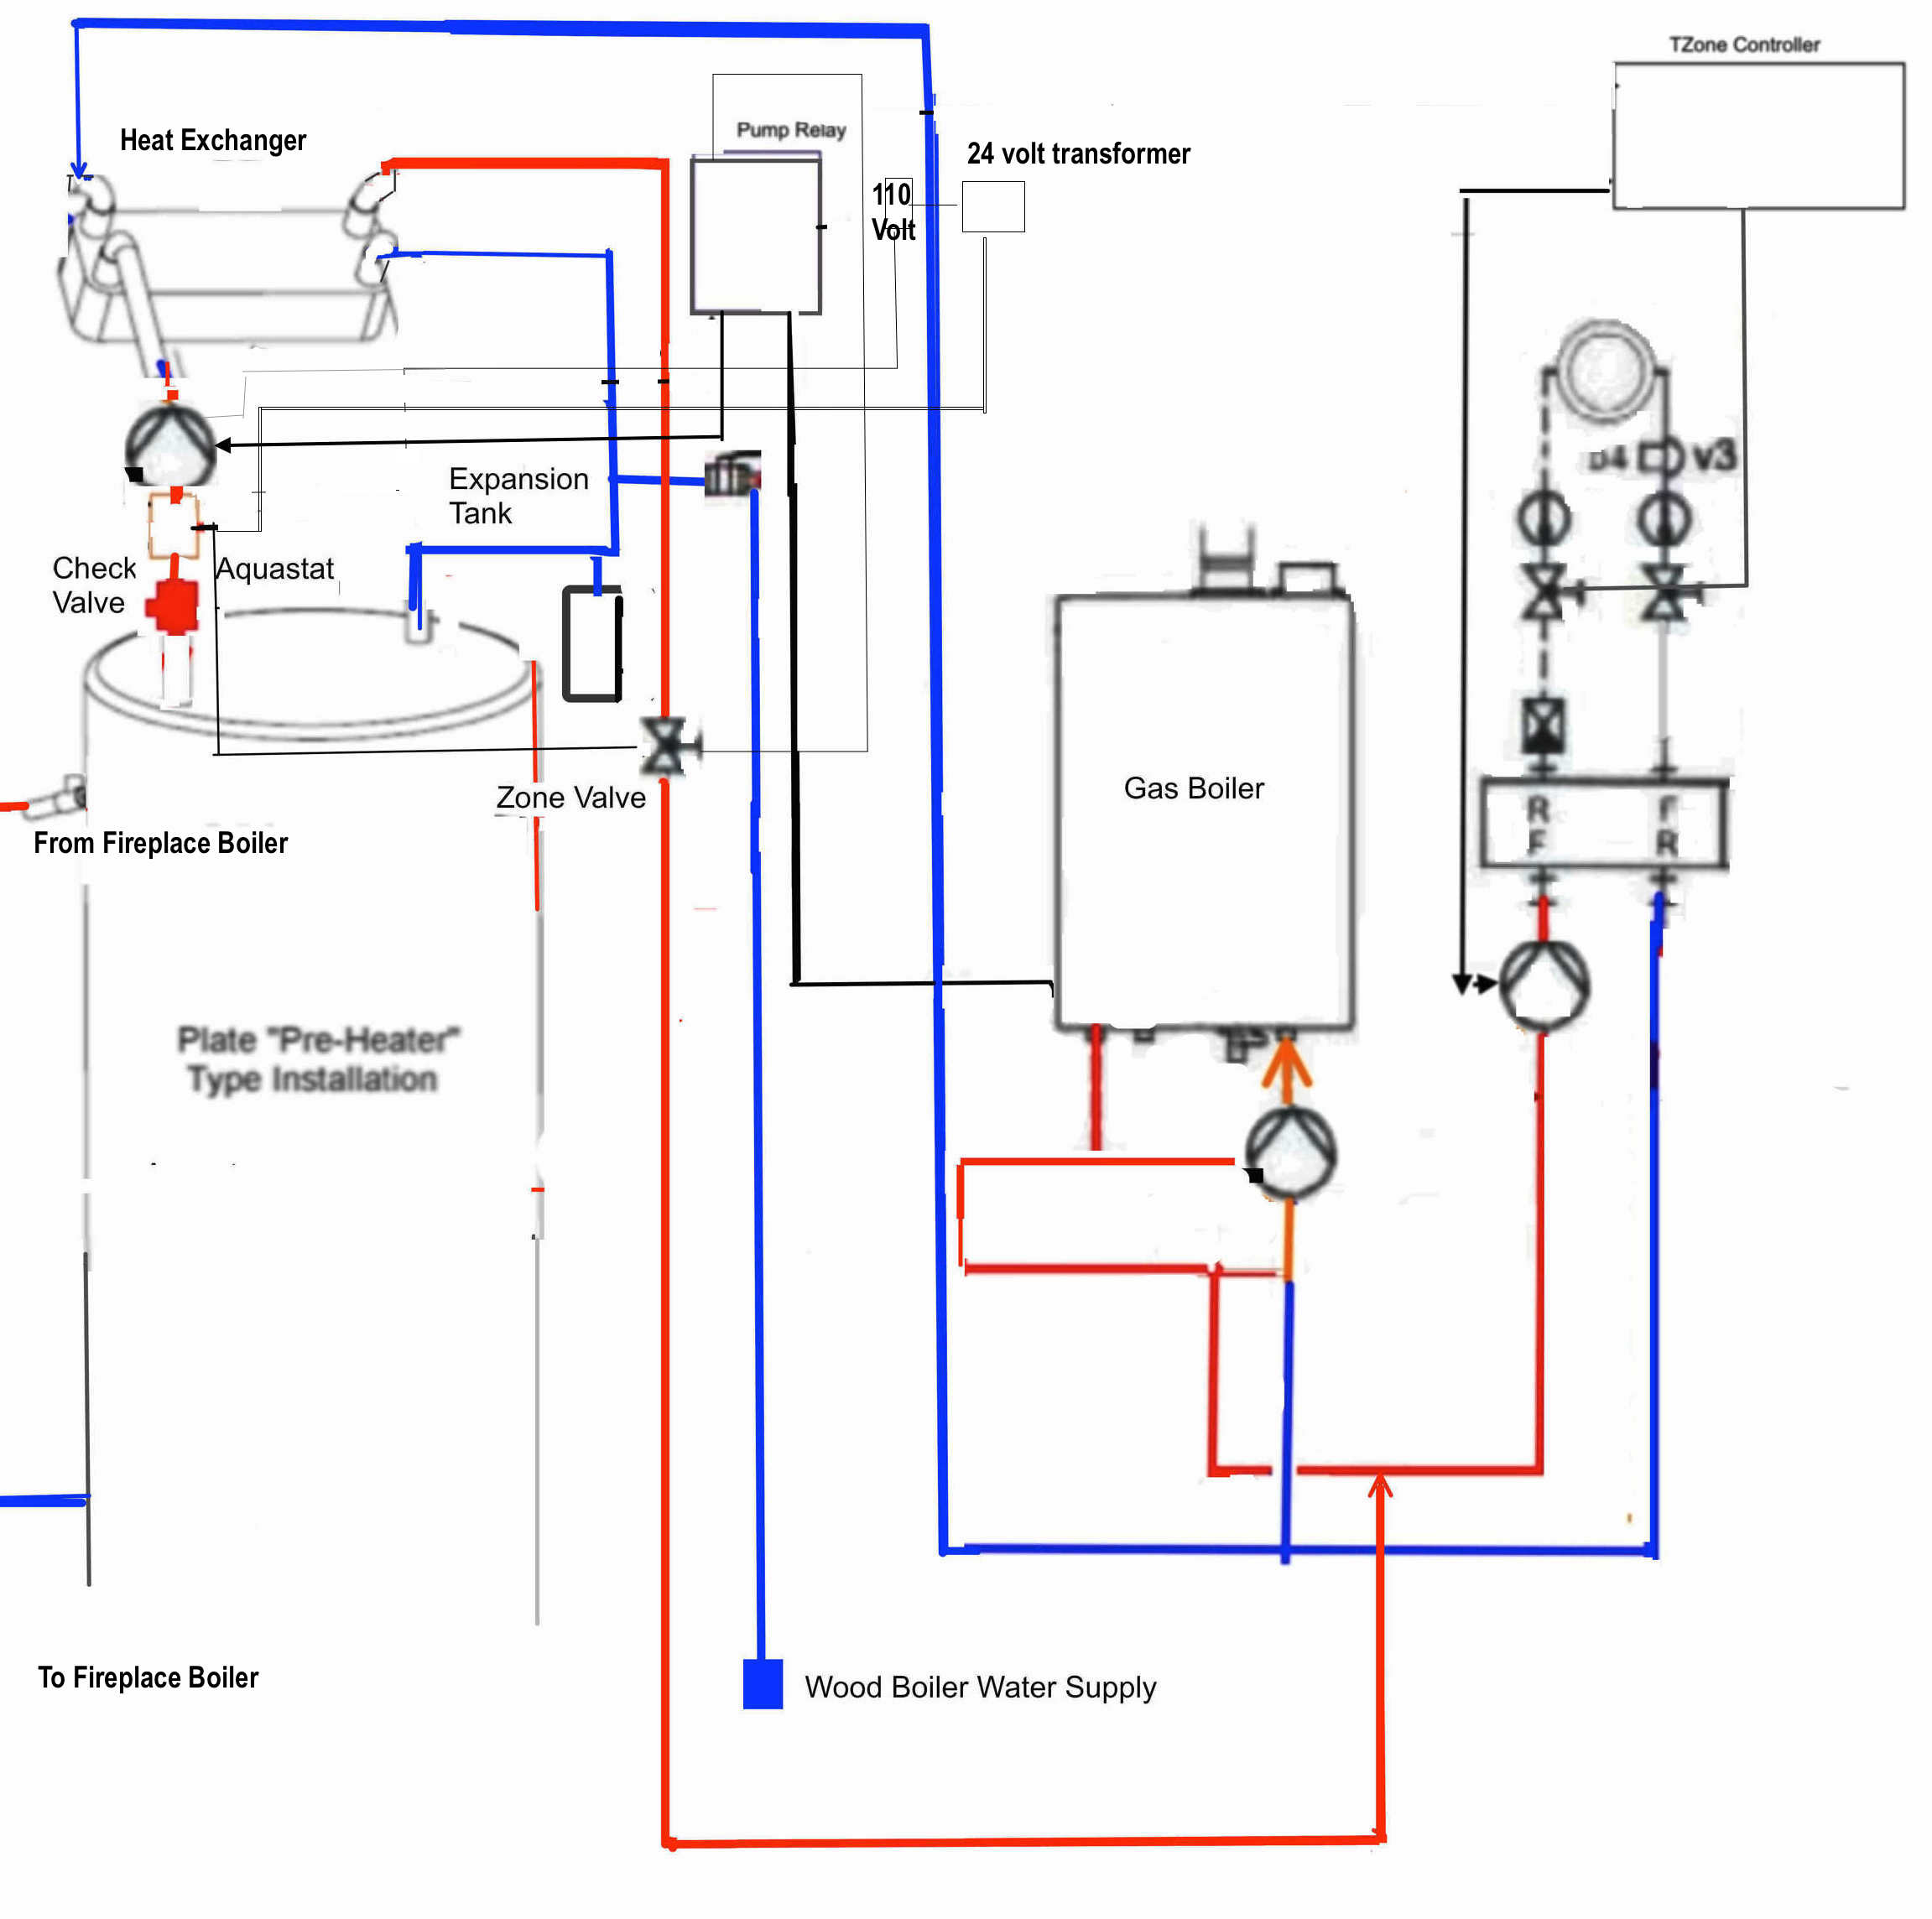 ... Storage FP Boiler Wiring wiring plan for fireplace boiler twinsprings  research institute grundfos circulating pump wiring